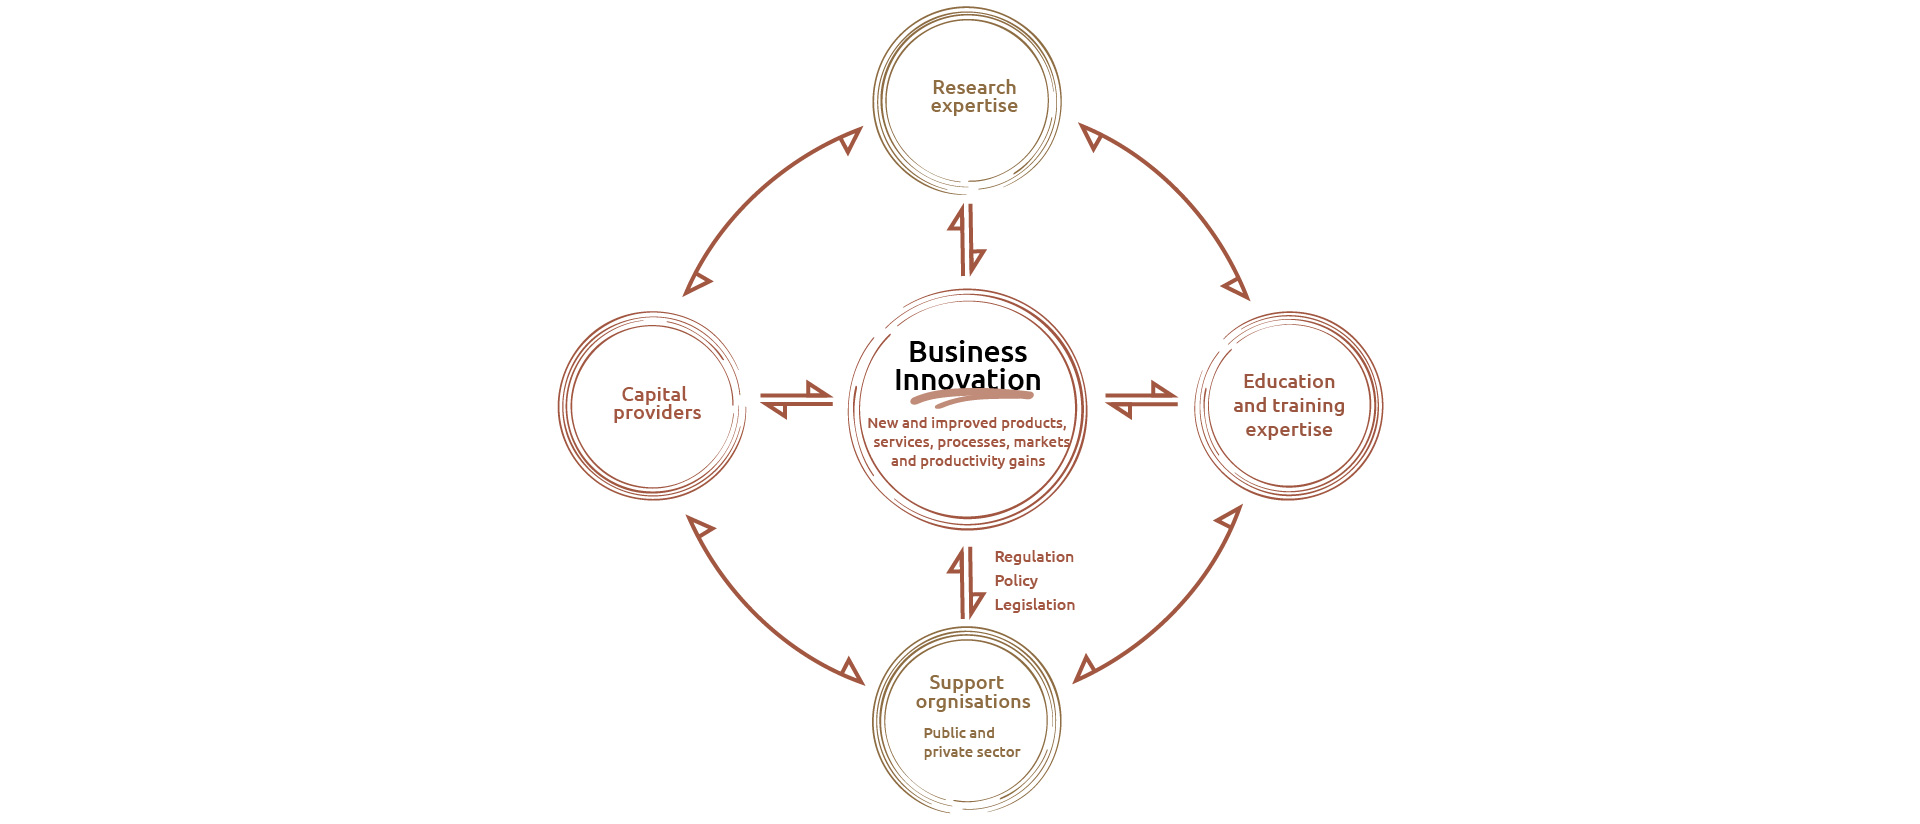 A visual showing the environment that is required to support and encourage business innovation. Business innovation includes the development of new and improved products, services, processes and markets and delivering gains in productivity.